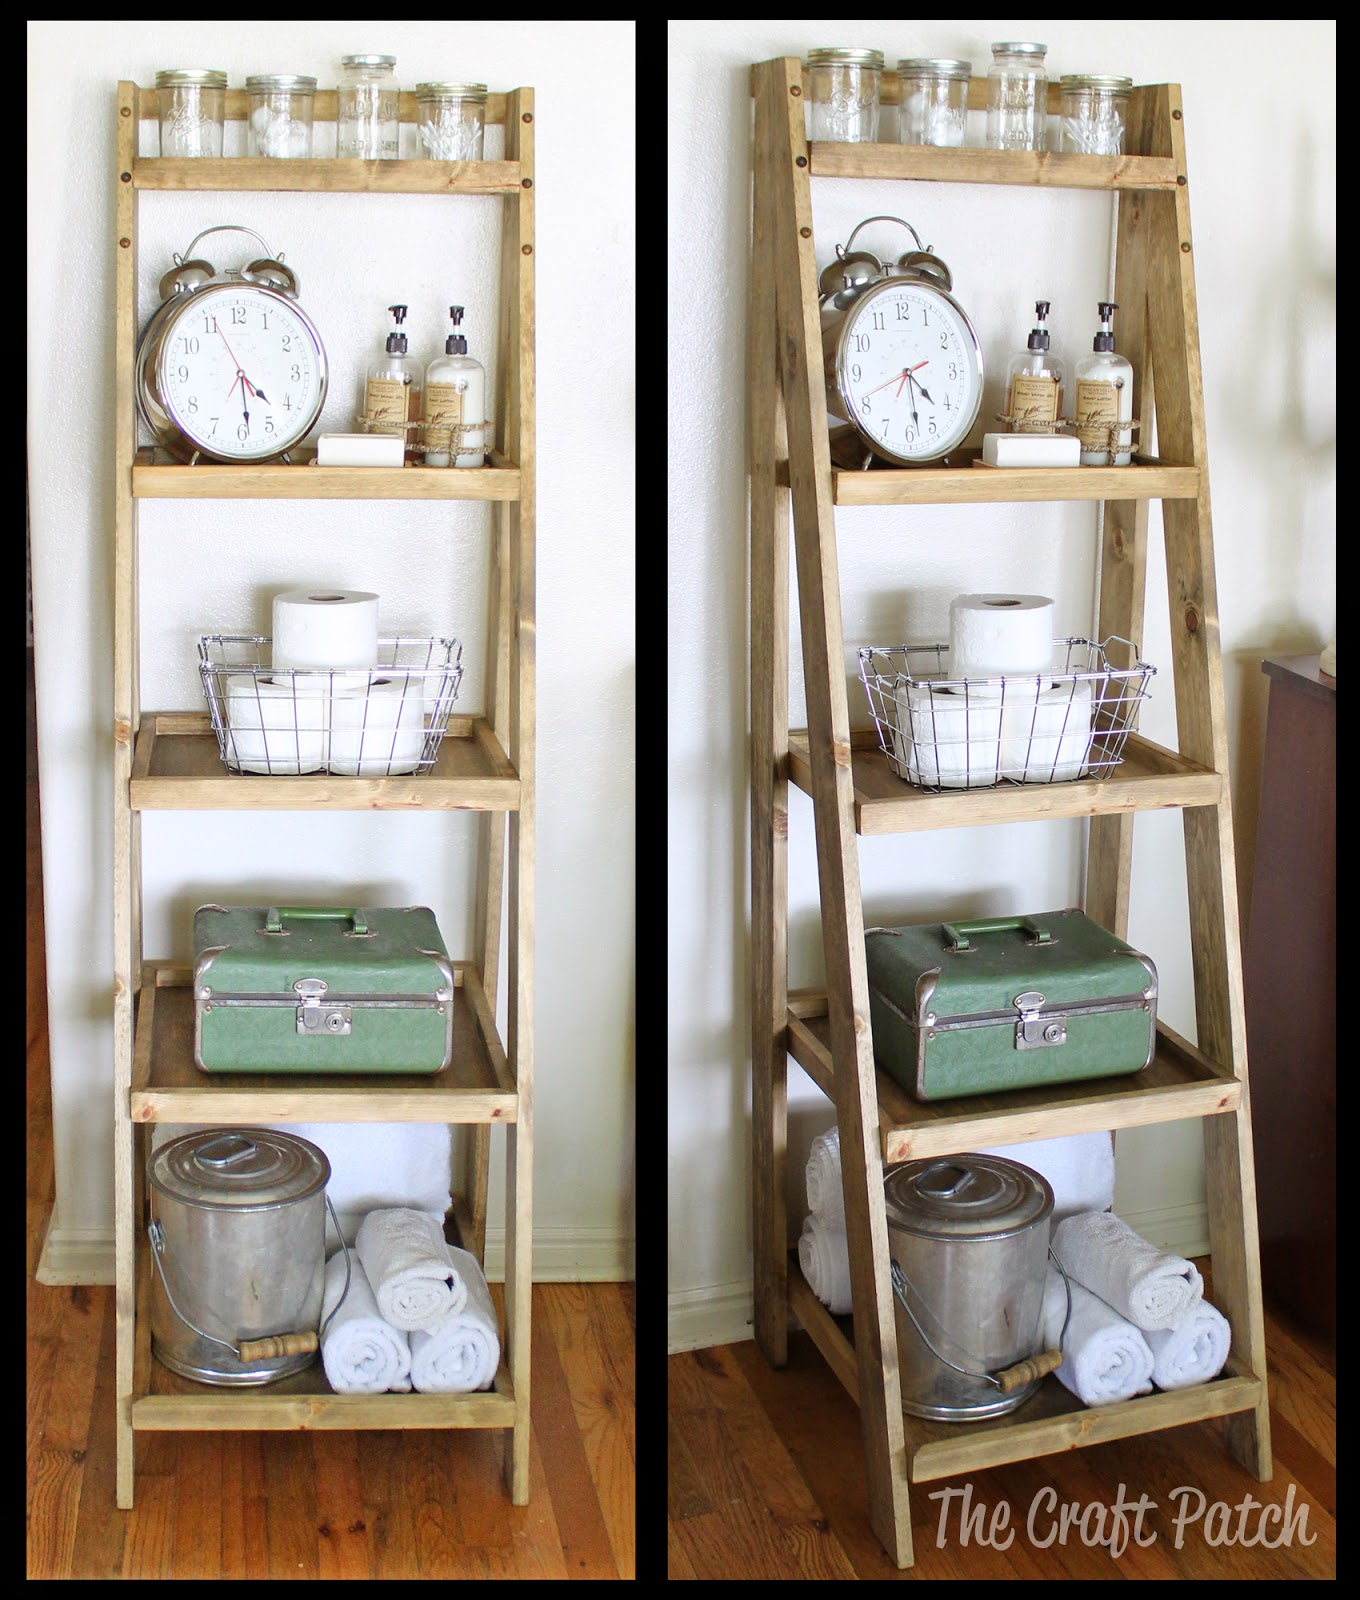 The Craft Patch Diy Ladder Shelf Bathroom Storage